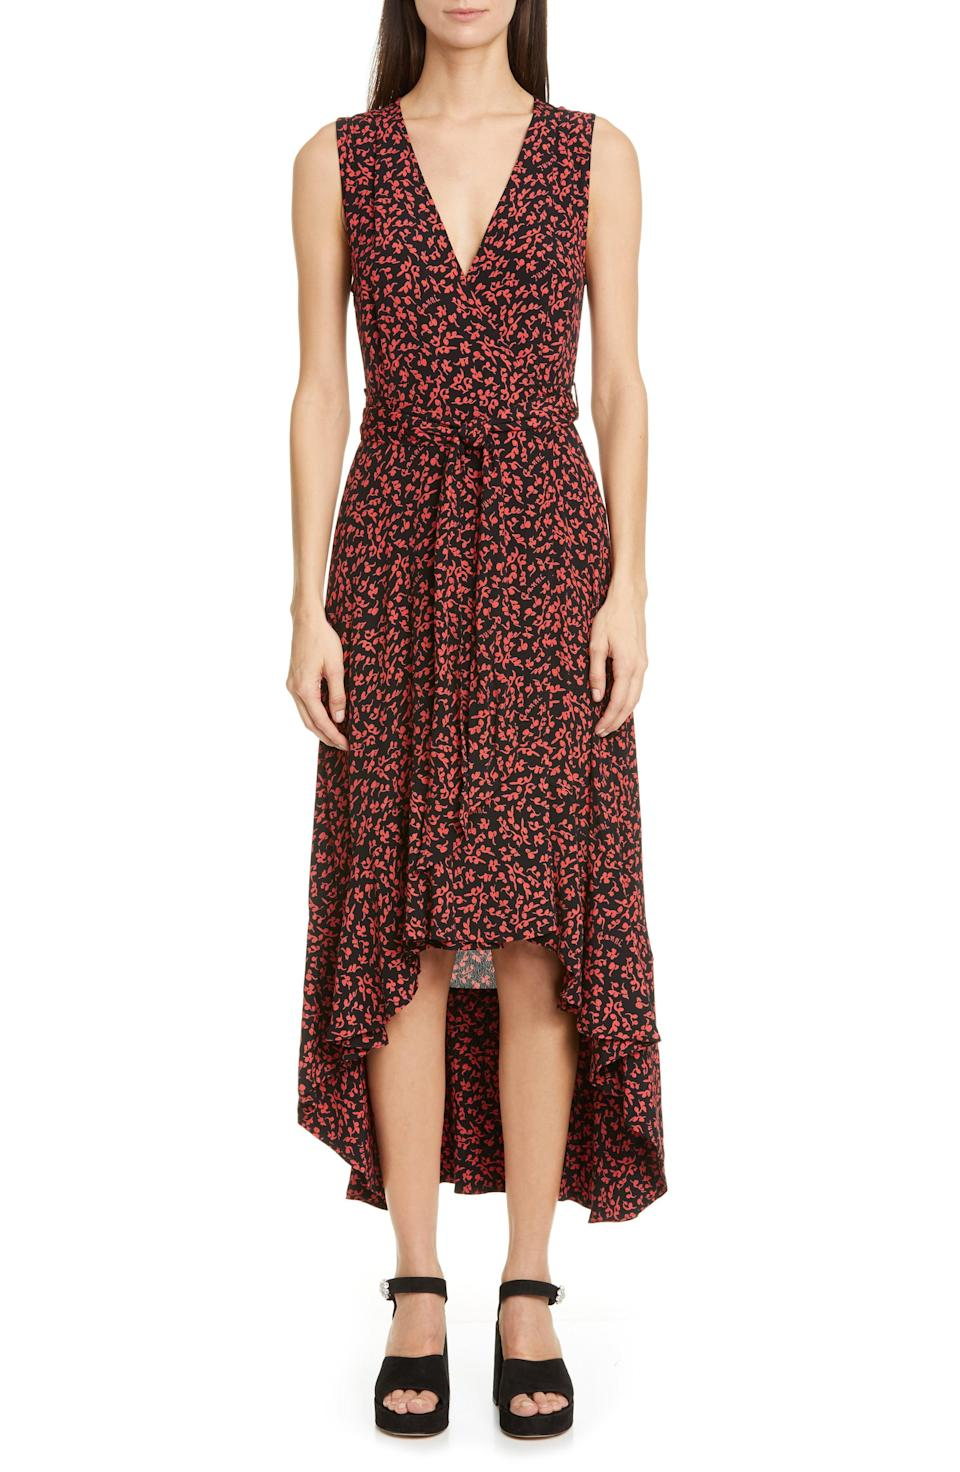 """<p><strong>GANNI</strong></p><p>nordstrom.com</p><p><strong>$206.50</strong></p><p><a href=""""https://go.redirectingat.com?id=74968X1596630&url=https%3A%2F%2Fwww.nordstrom.com%2Fs%2Fganni-floral-logo-print-high-low-wrap-dress%2F5590320&sref=https%3A%2F%2Fwww.redbookmag.com%2Flife%2Fg34807129%2Fnordstrom-black-friday-cyber-monday-deals-2020%2F"""" rel=""""nofollow noopener"""" target=""""_blank"""" data-ylk=""""slk:Shop Now"""" class=""""link rapid-noclick-resp"""">Shop Now</a></p><p><strong><del>$295</del> $206.50 (30 % off) </strong></p><p>You can totally layer a long-sleeve shirt under this cute dress, and then once spring and summer rolls around, you can wear it on its own. </p>"""